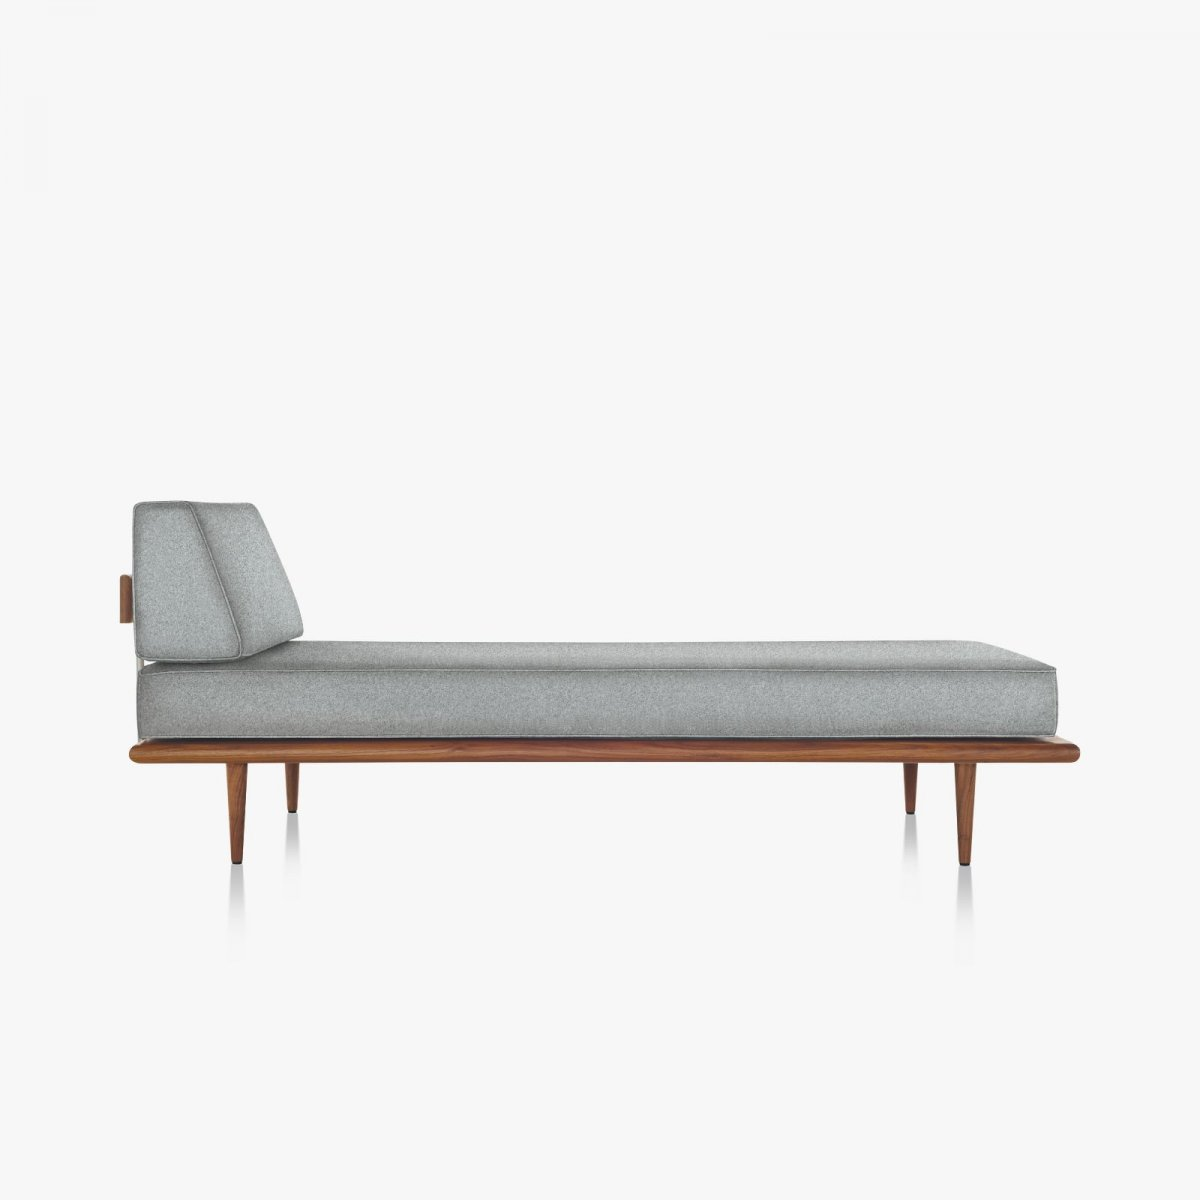 Nelson Daybed with Side Bolster and Wood Taper Legs, walnut, side view.